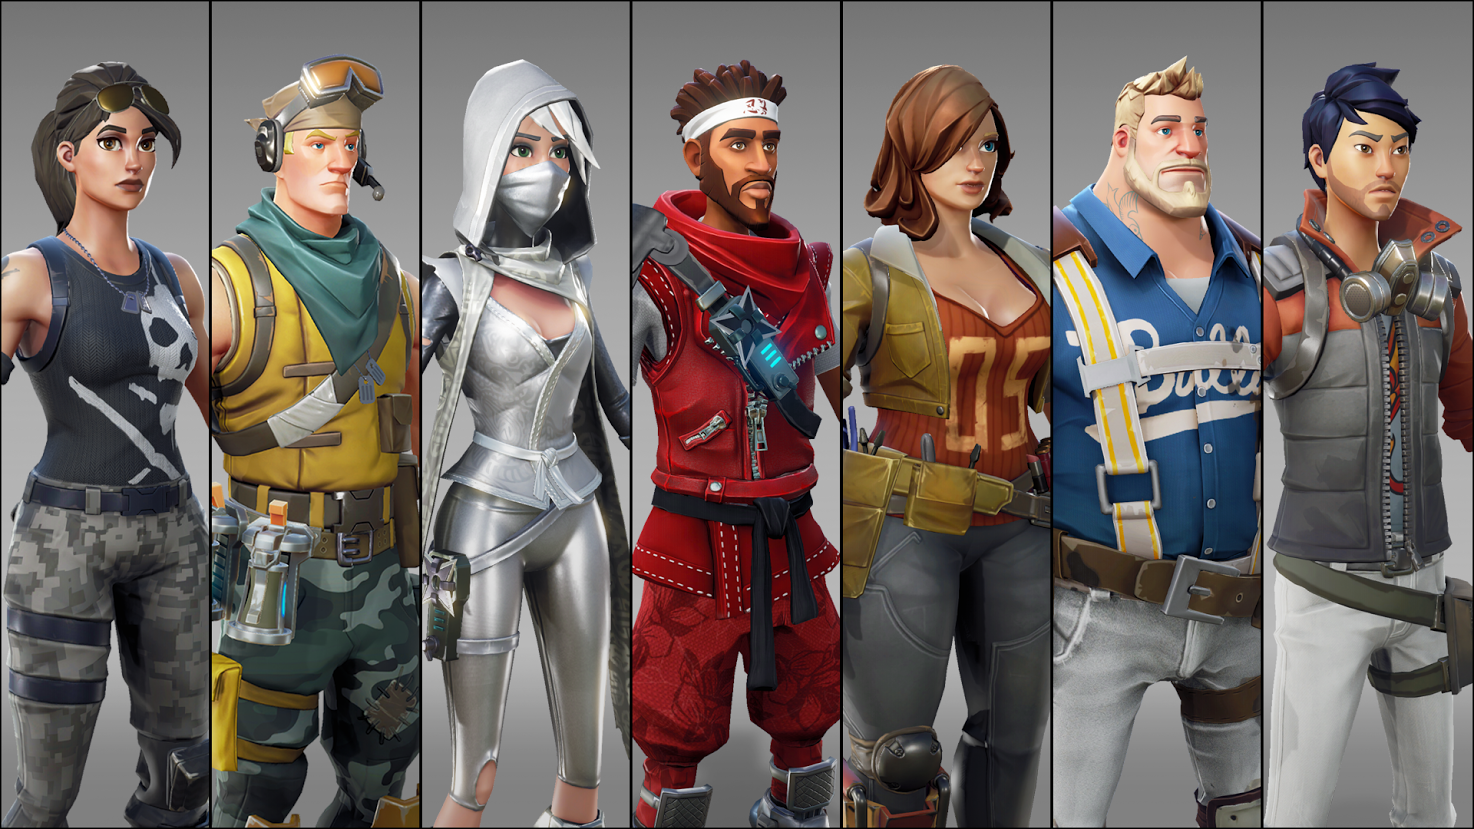 Great character designs for all the heroes and survivors.